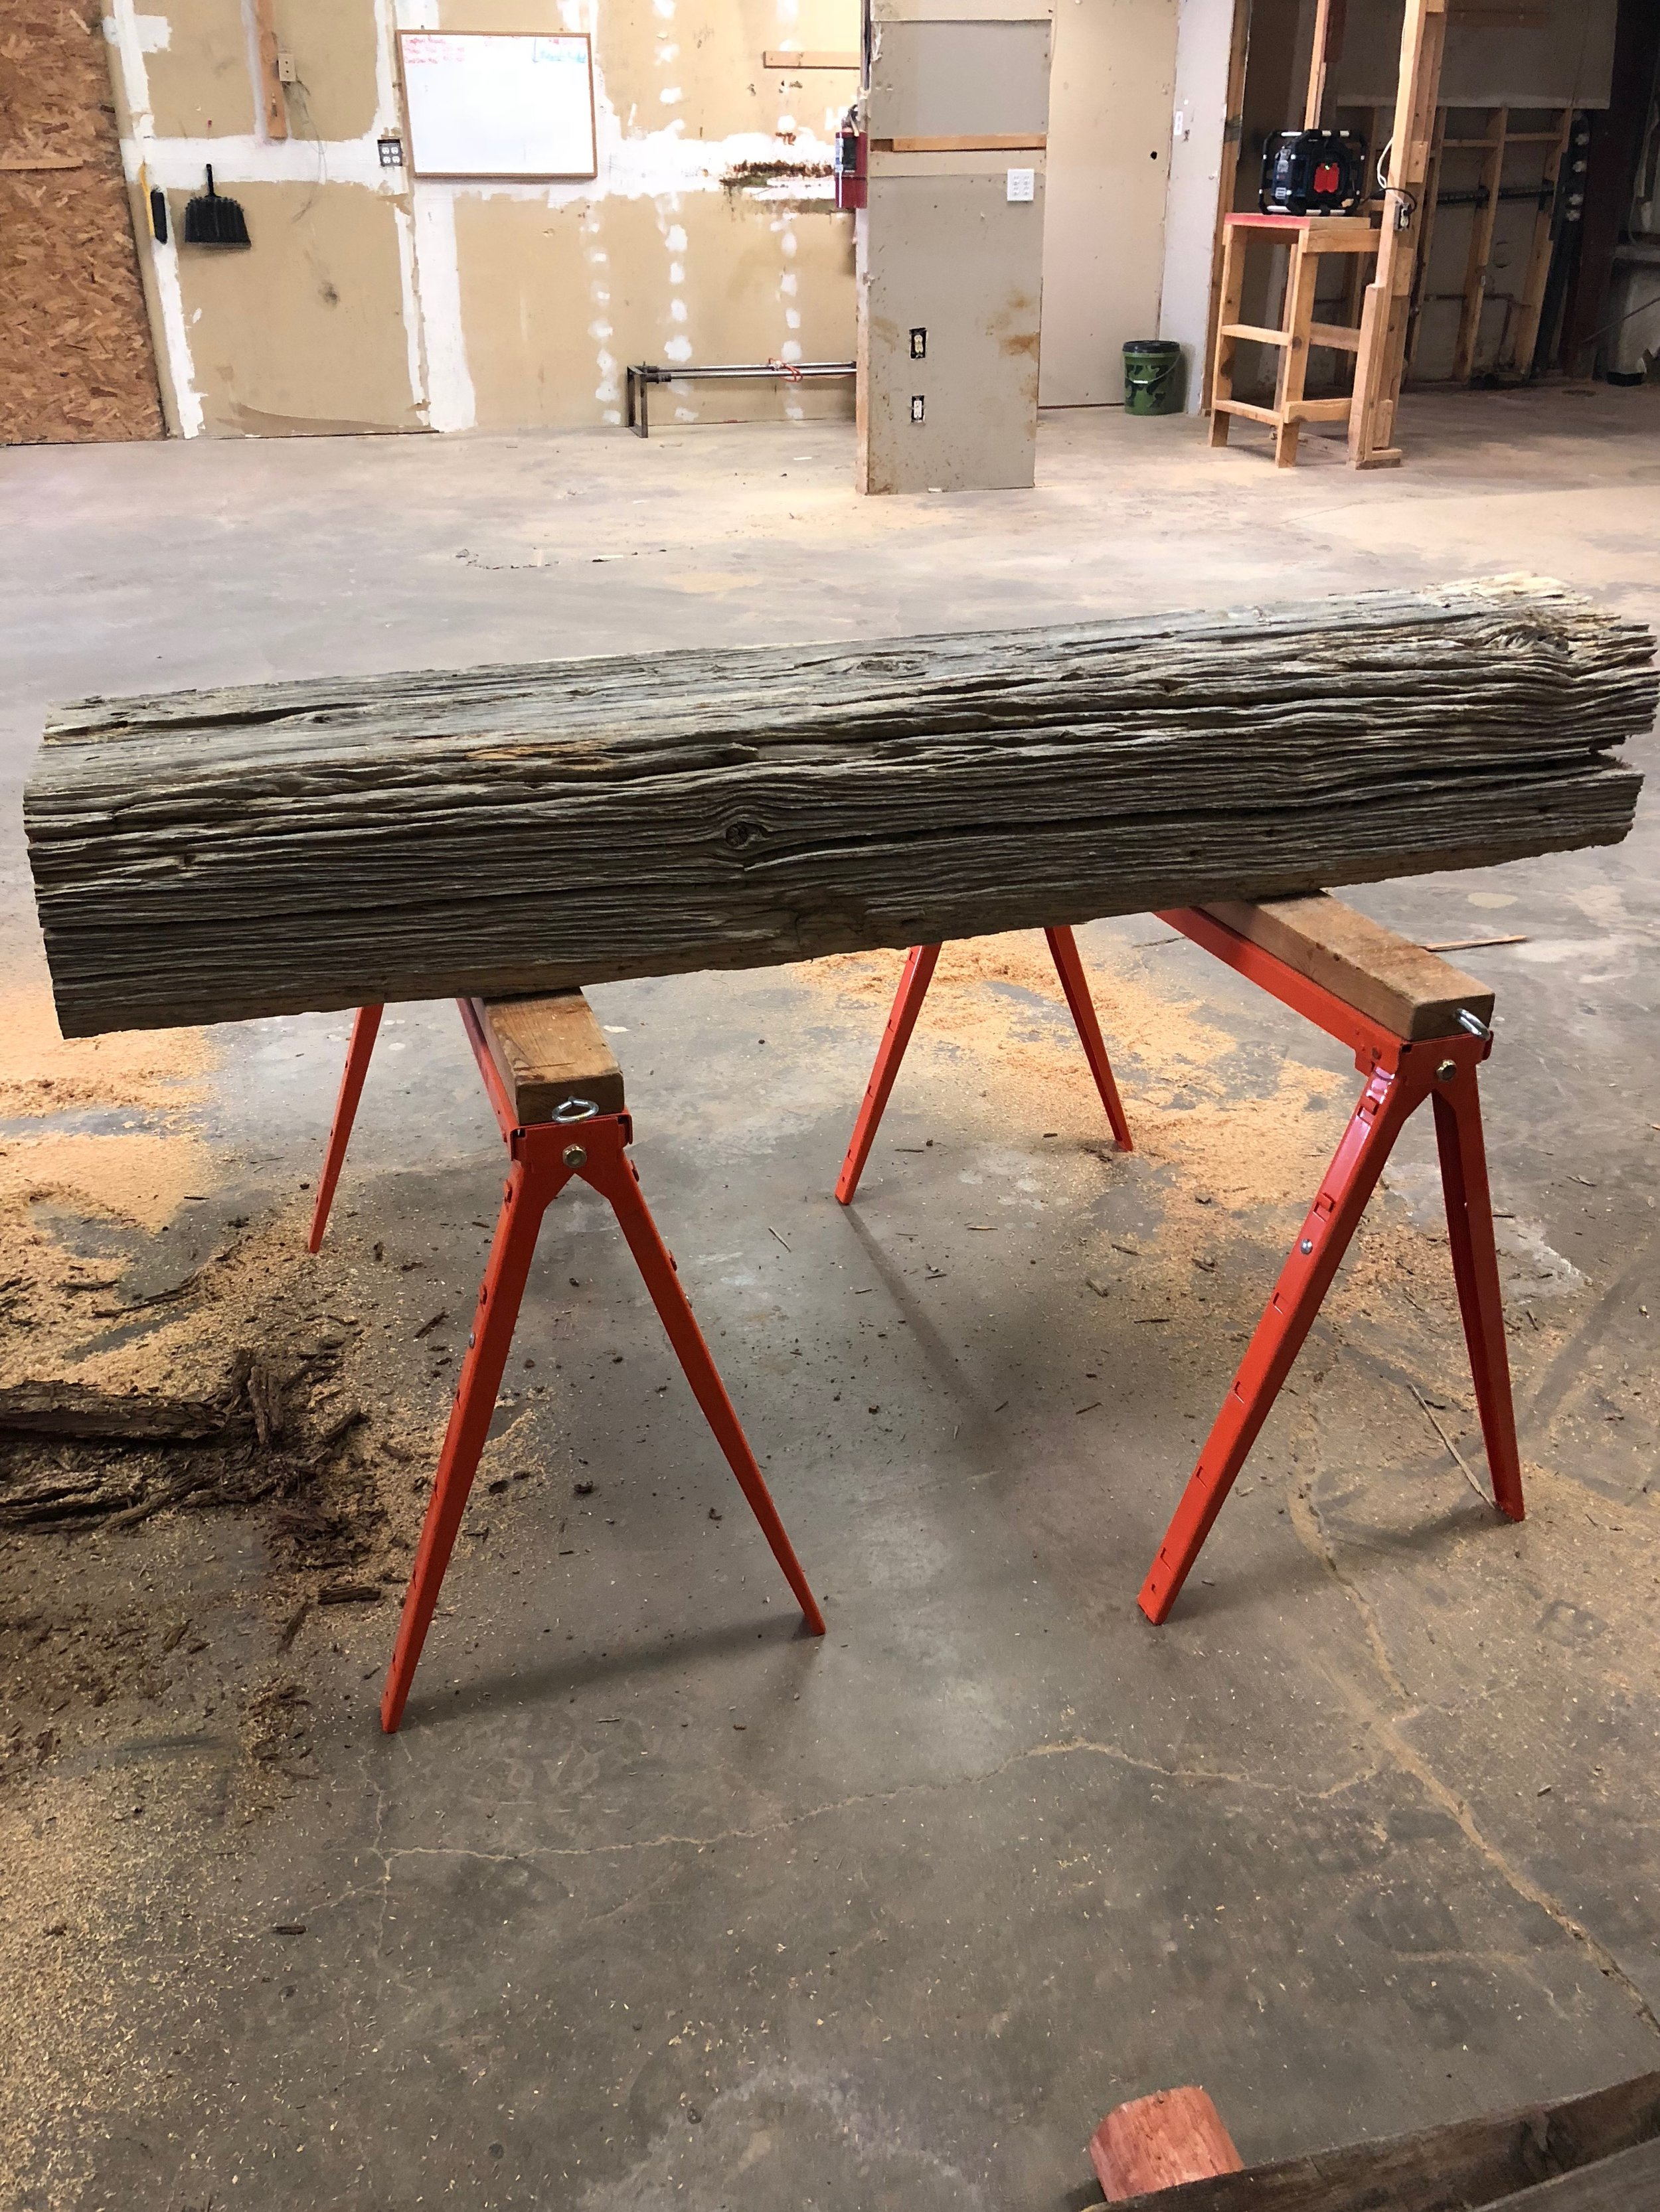 Need a new Mantle? Old Cedar Timber harvested from the Ojito Wilderness back in the early 1900's. Can be sold rustic or milled to your specifications.